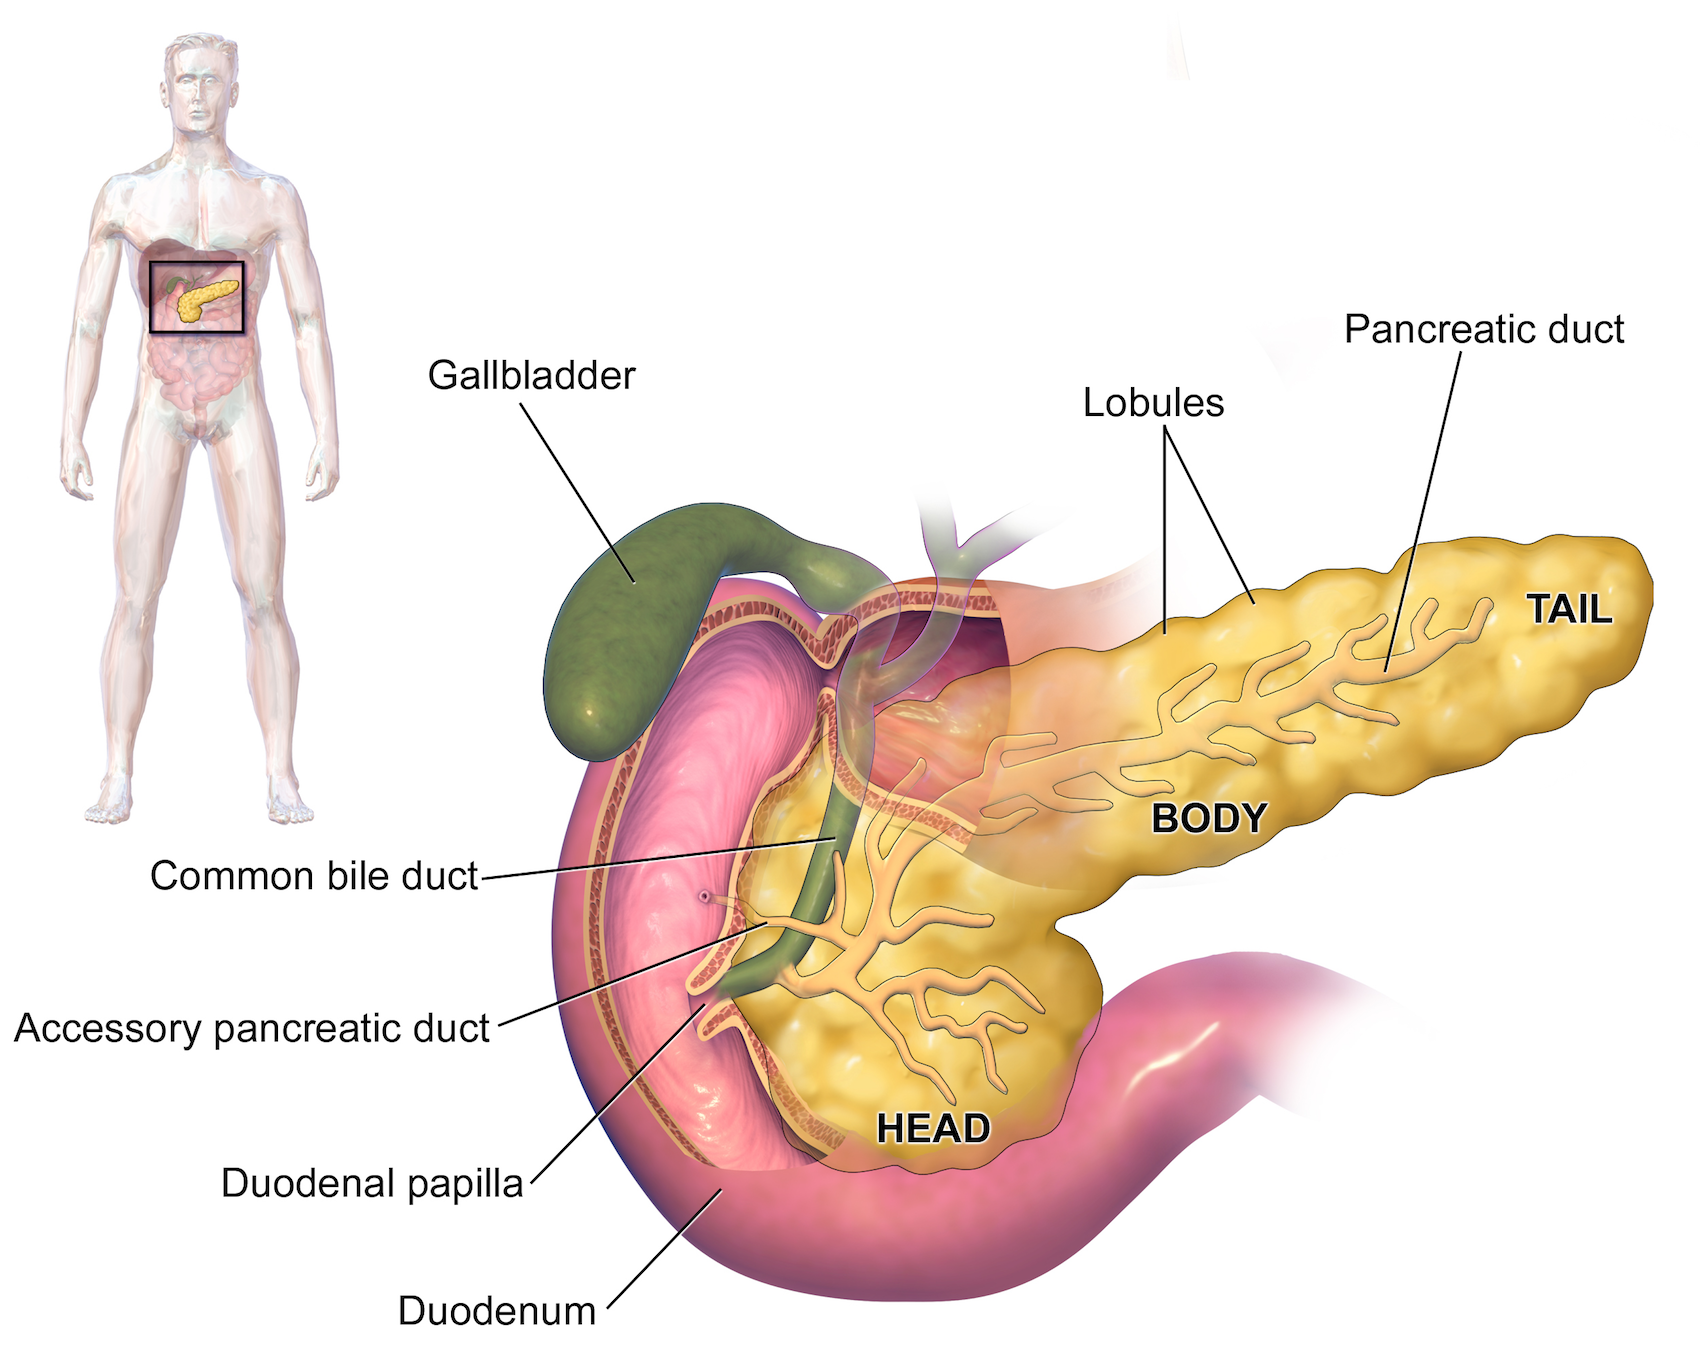 General Surgery Whipple Procedure Pancreaticoduodenectomy